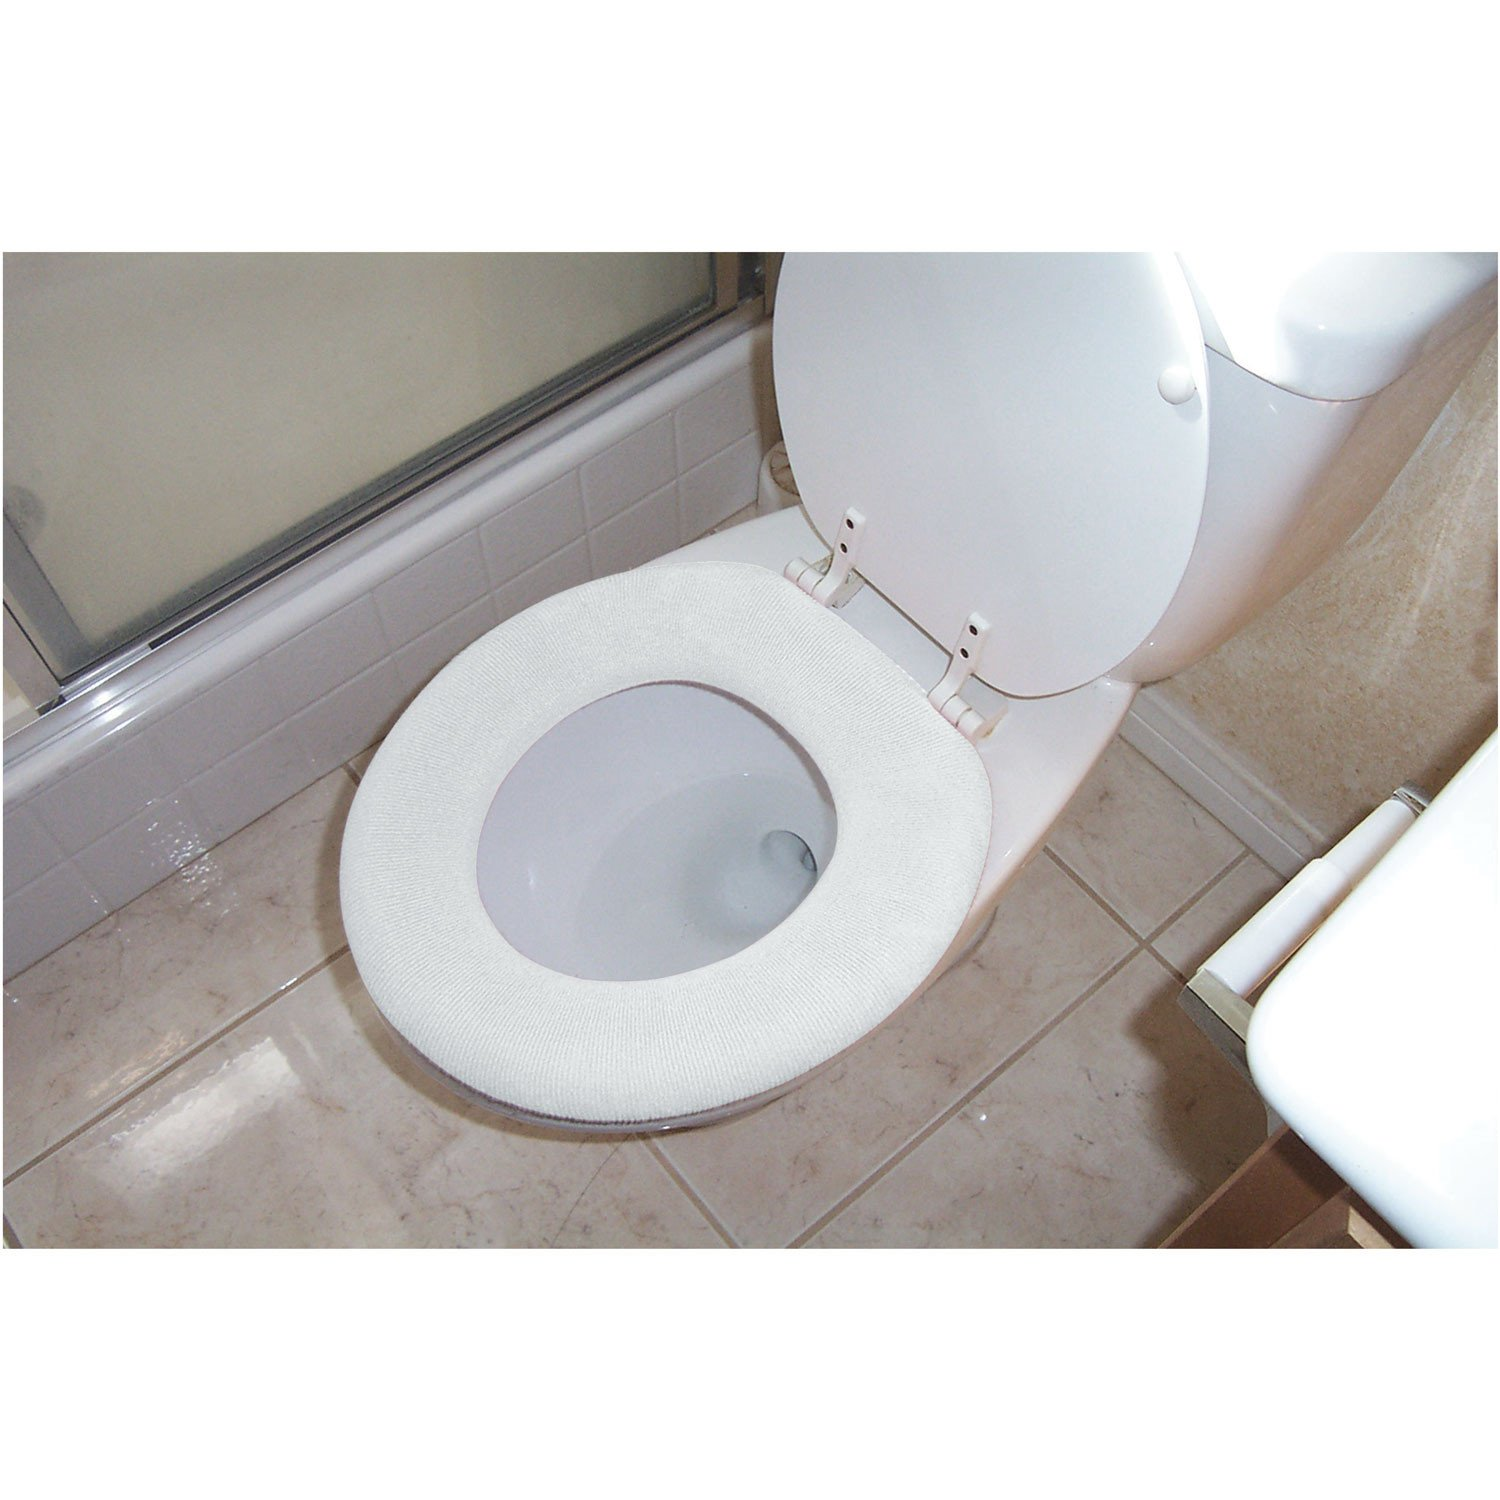 Soft N Comfy Toilet Seat Cover Velcromag